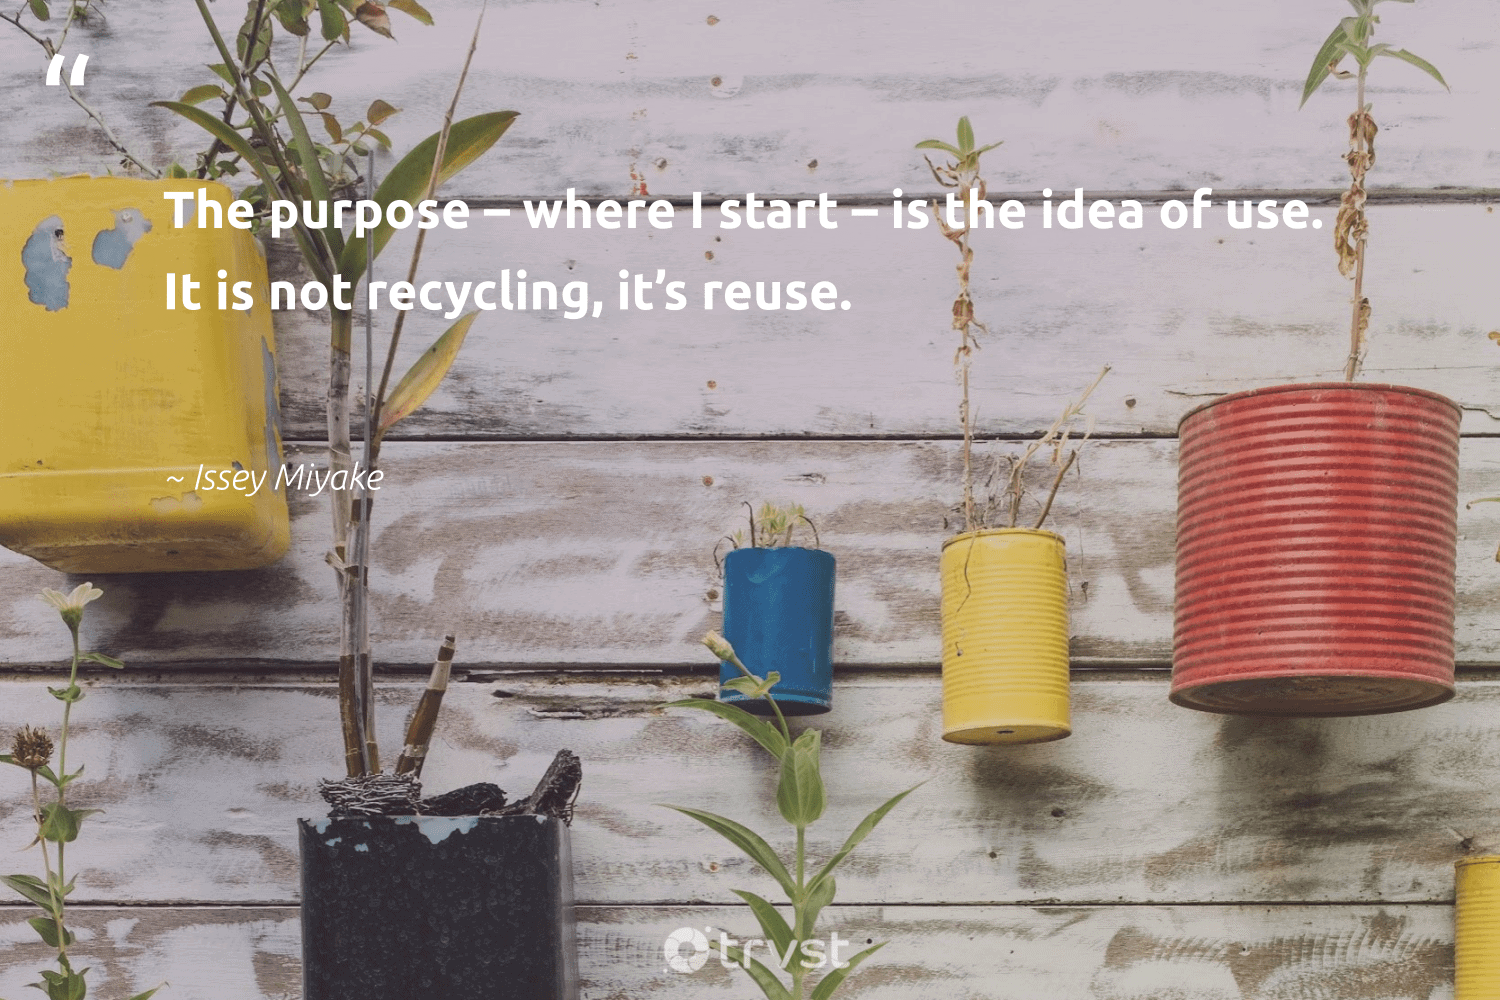 """""""The purpose – where I start – is the idea of use. It is not recycling, it's reuse.""""  - Issey Miyake #trvst #quotes #recycling #reuse #purpose #reducereuserecycle #reduce #savetheplanet #earthdayeveryday #socialimpact #upcycling #recycled"""